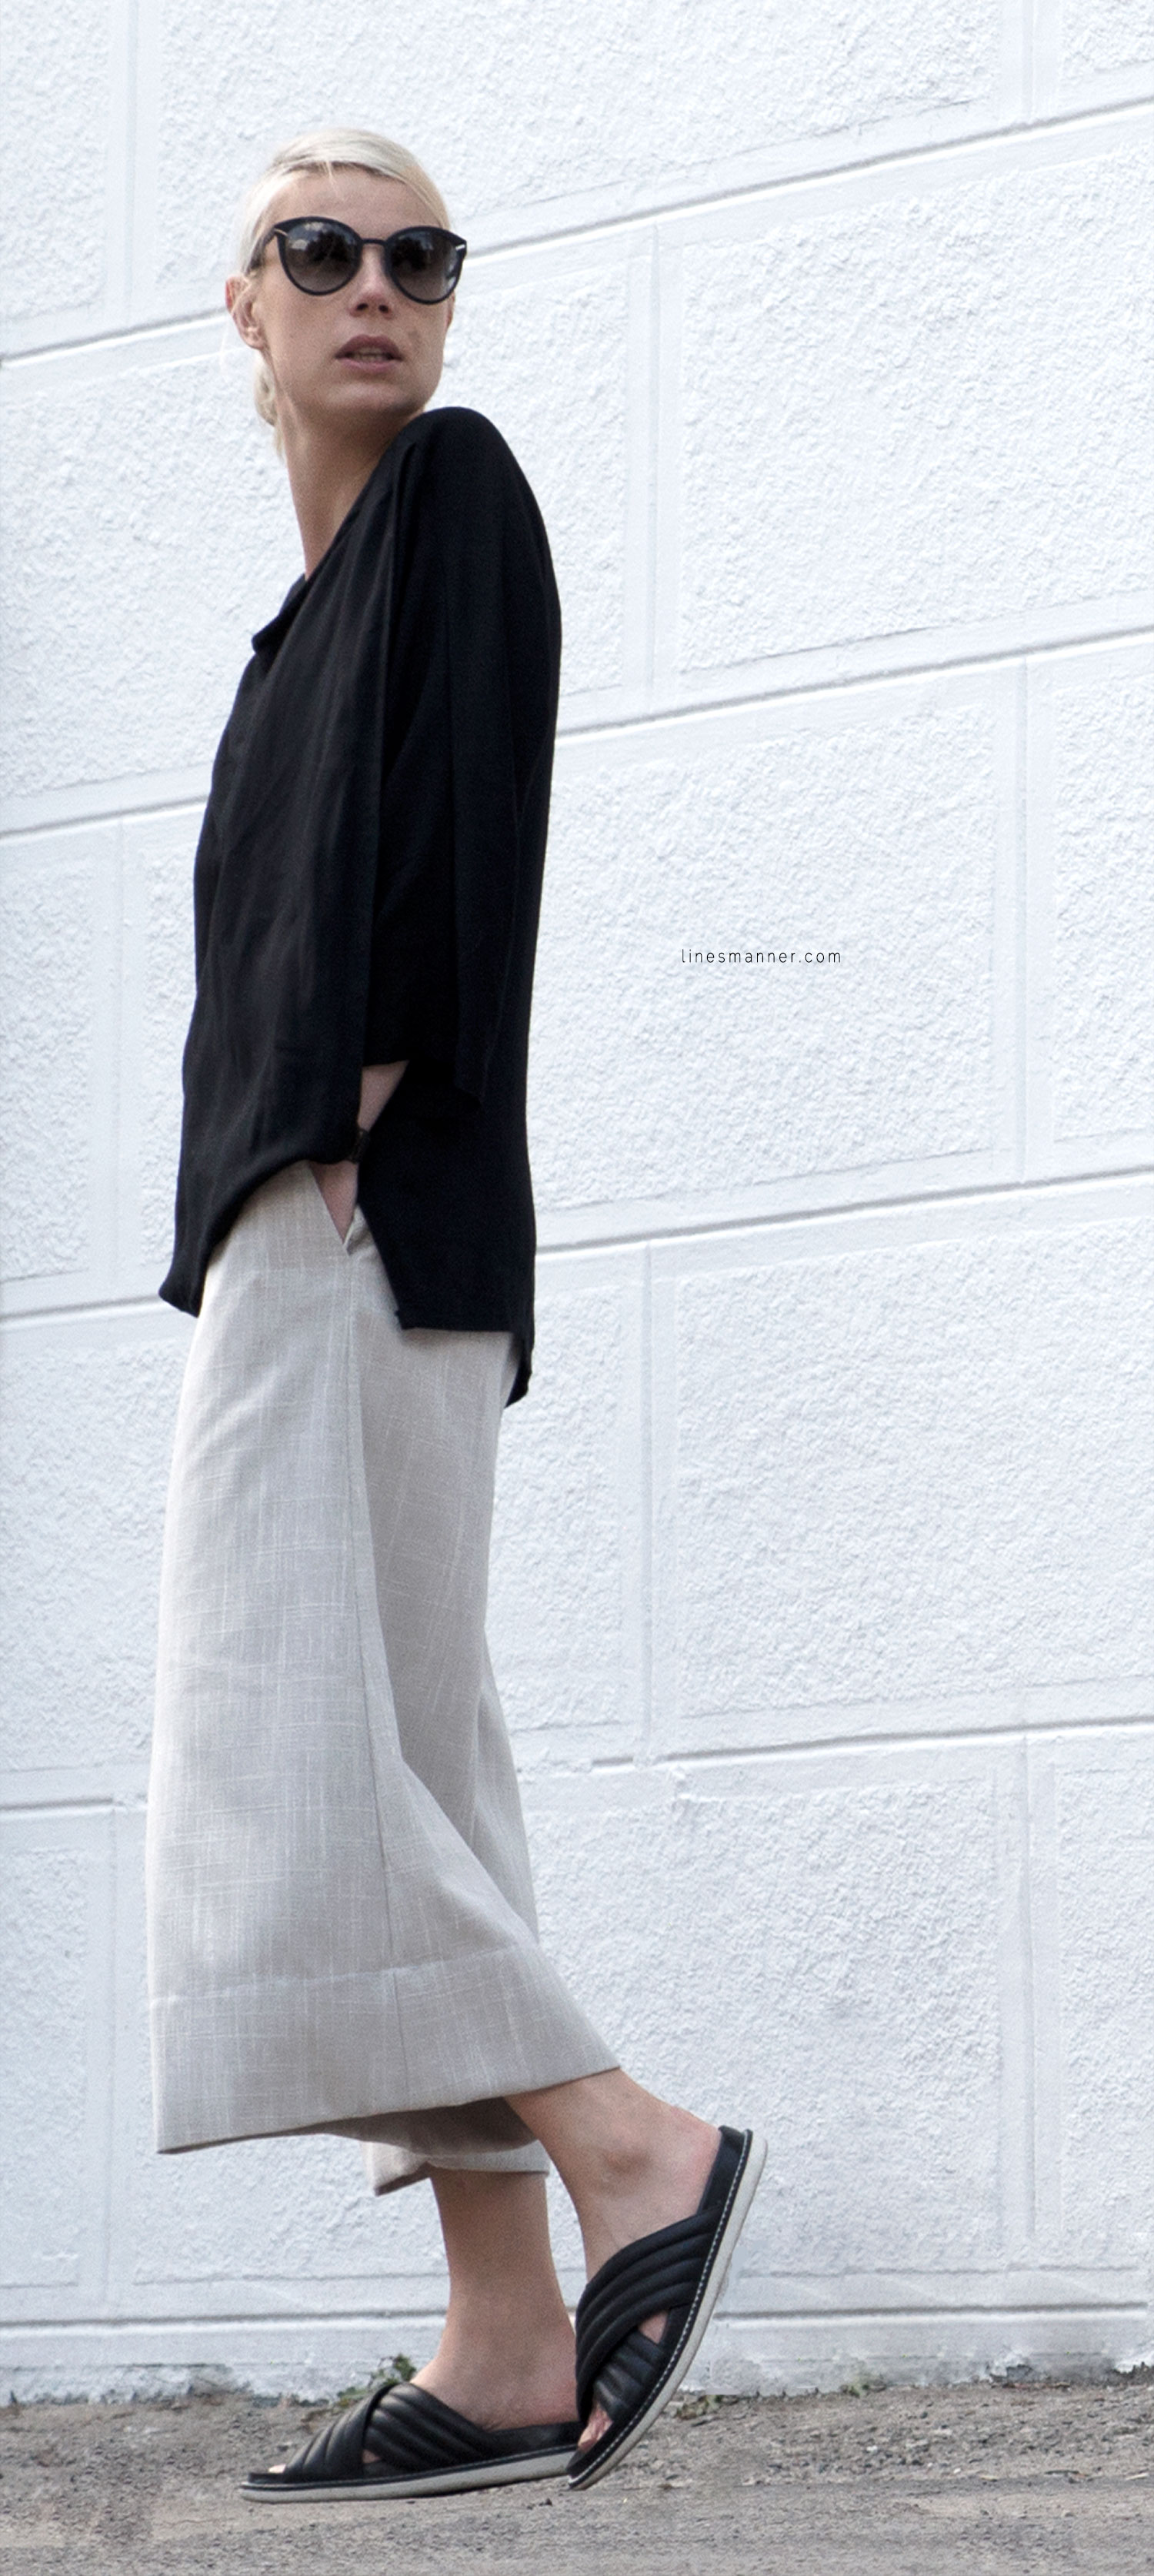 Lines-Manner-Modern-Minimal-Effortless-Casual-Wide_Leg_Culotte-Coidlyn_Wight-Draped-Coton-Linen-Sustainable-Slow_Fashion-Neutrals-Structure-Volume-Fluid-Simplicity-Details-10